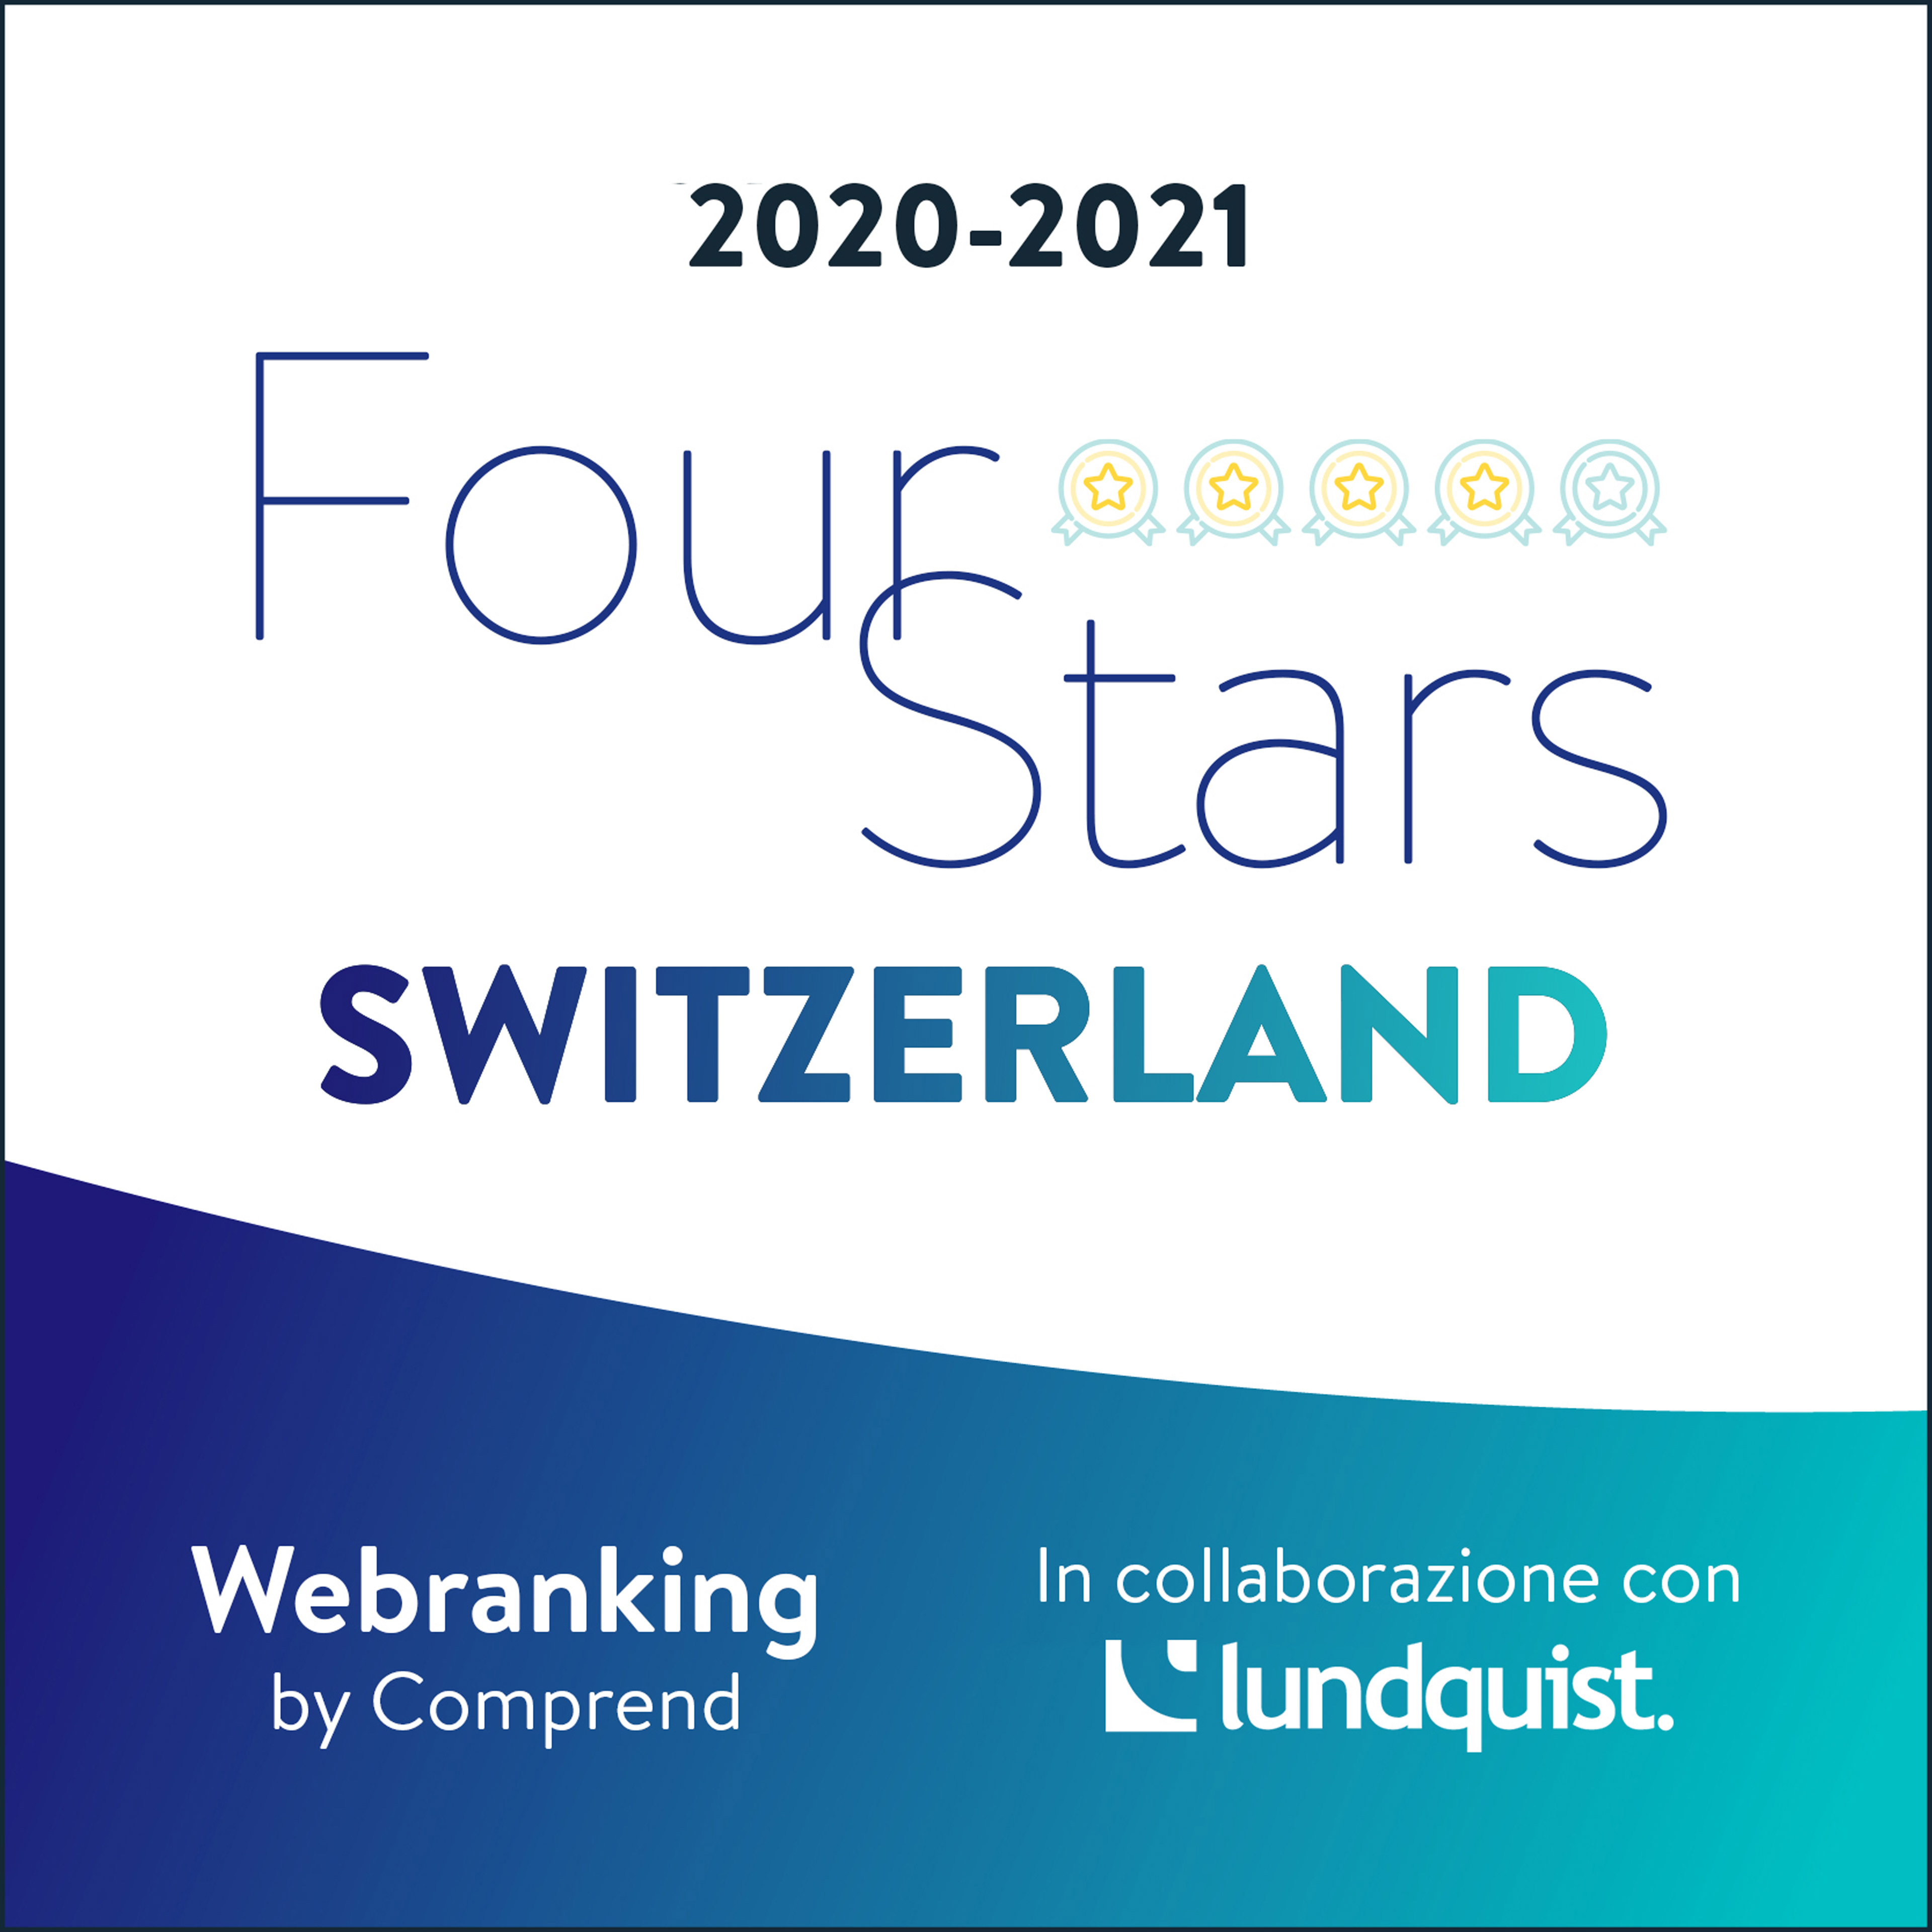 Sika received four stars in the Webranking 2020/2021